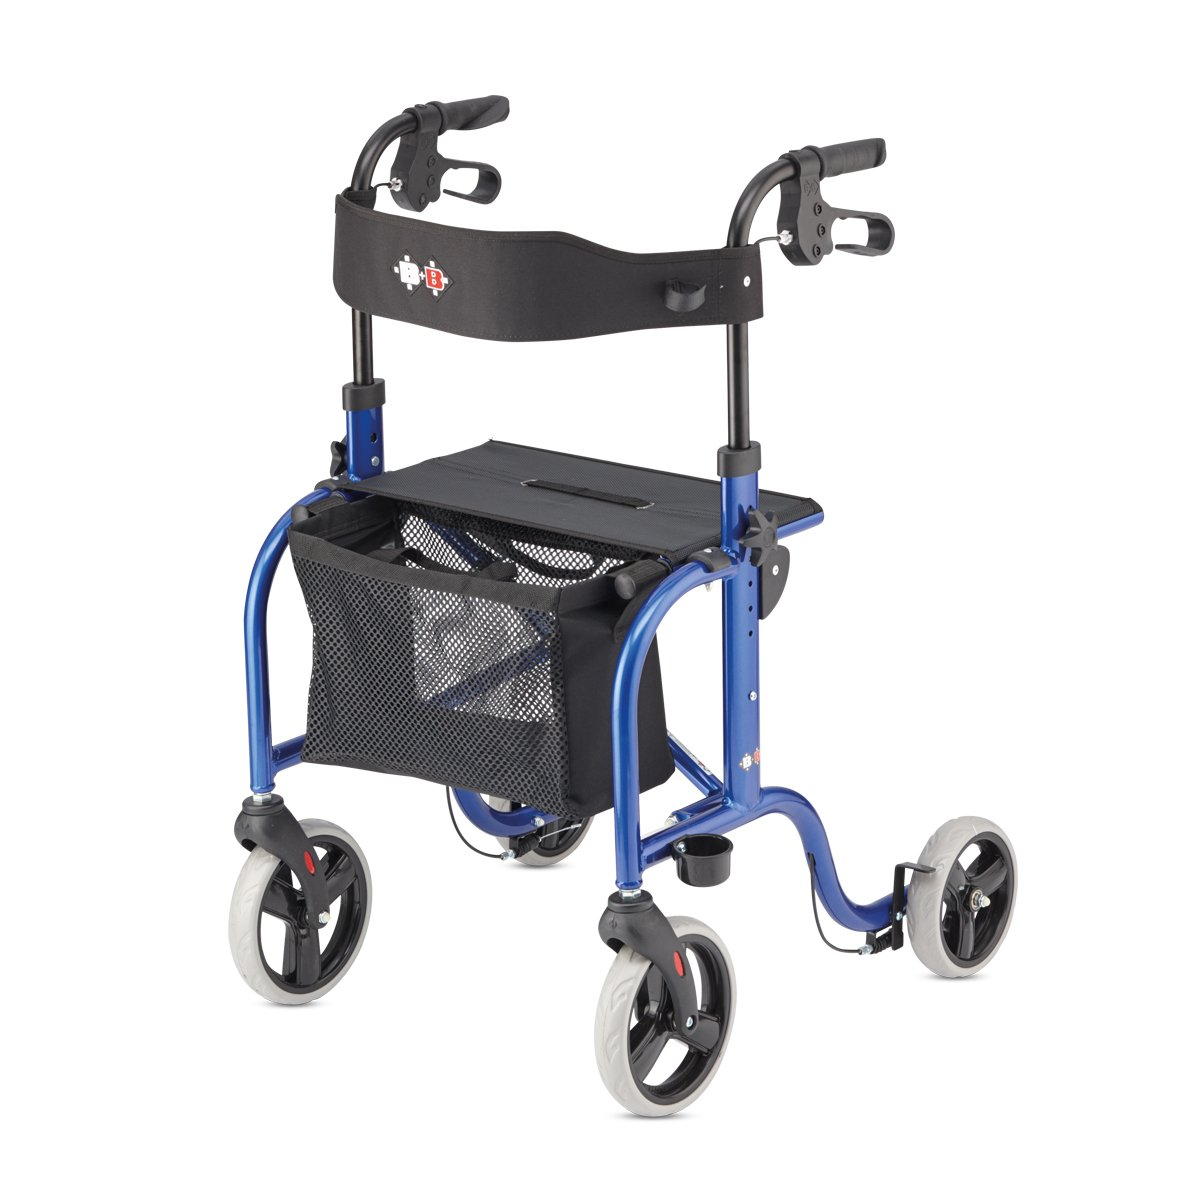 RL-Smart Lightweight Walker Rollator Foldable German Design (Blue)